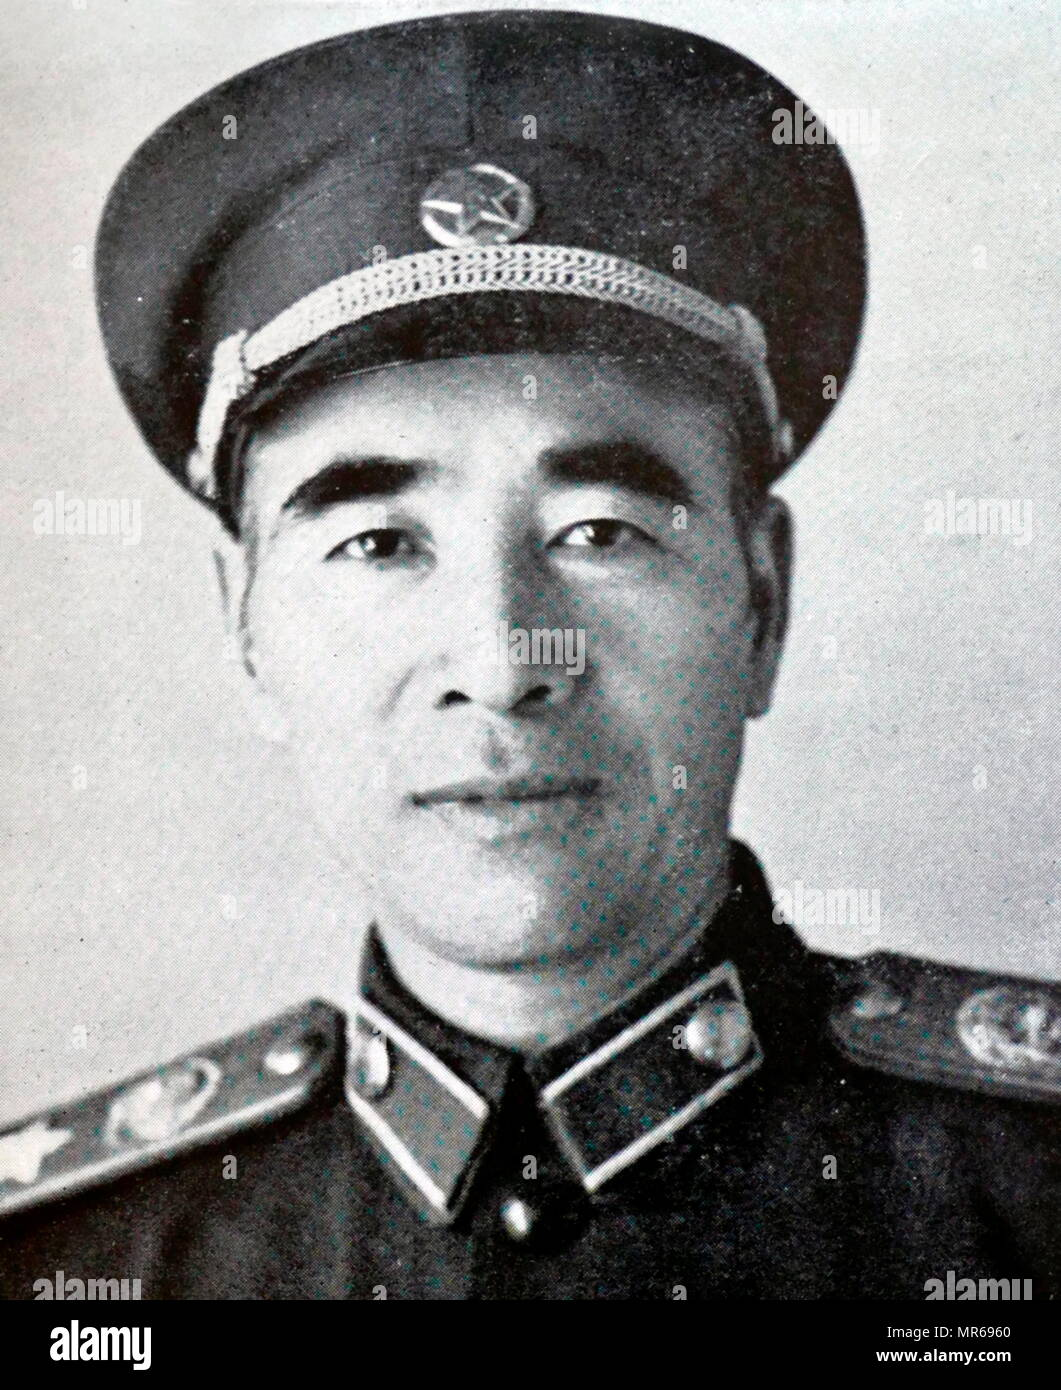 Lin Biao (1907 – 1971) Marshal of the People's Republic of China. He ranked third among the Ten Marshals. Defence Minister of China 1959-1971 - Stock Image